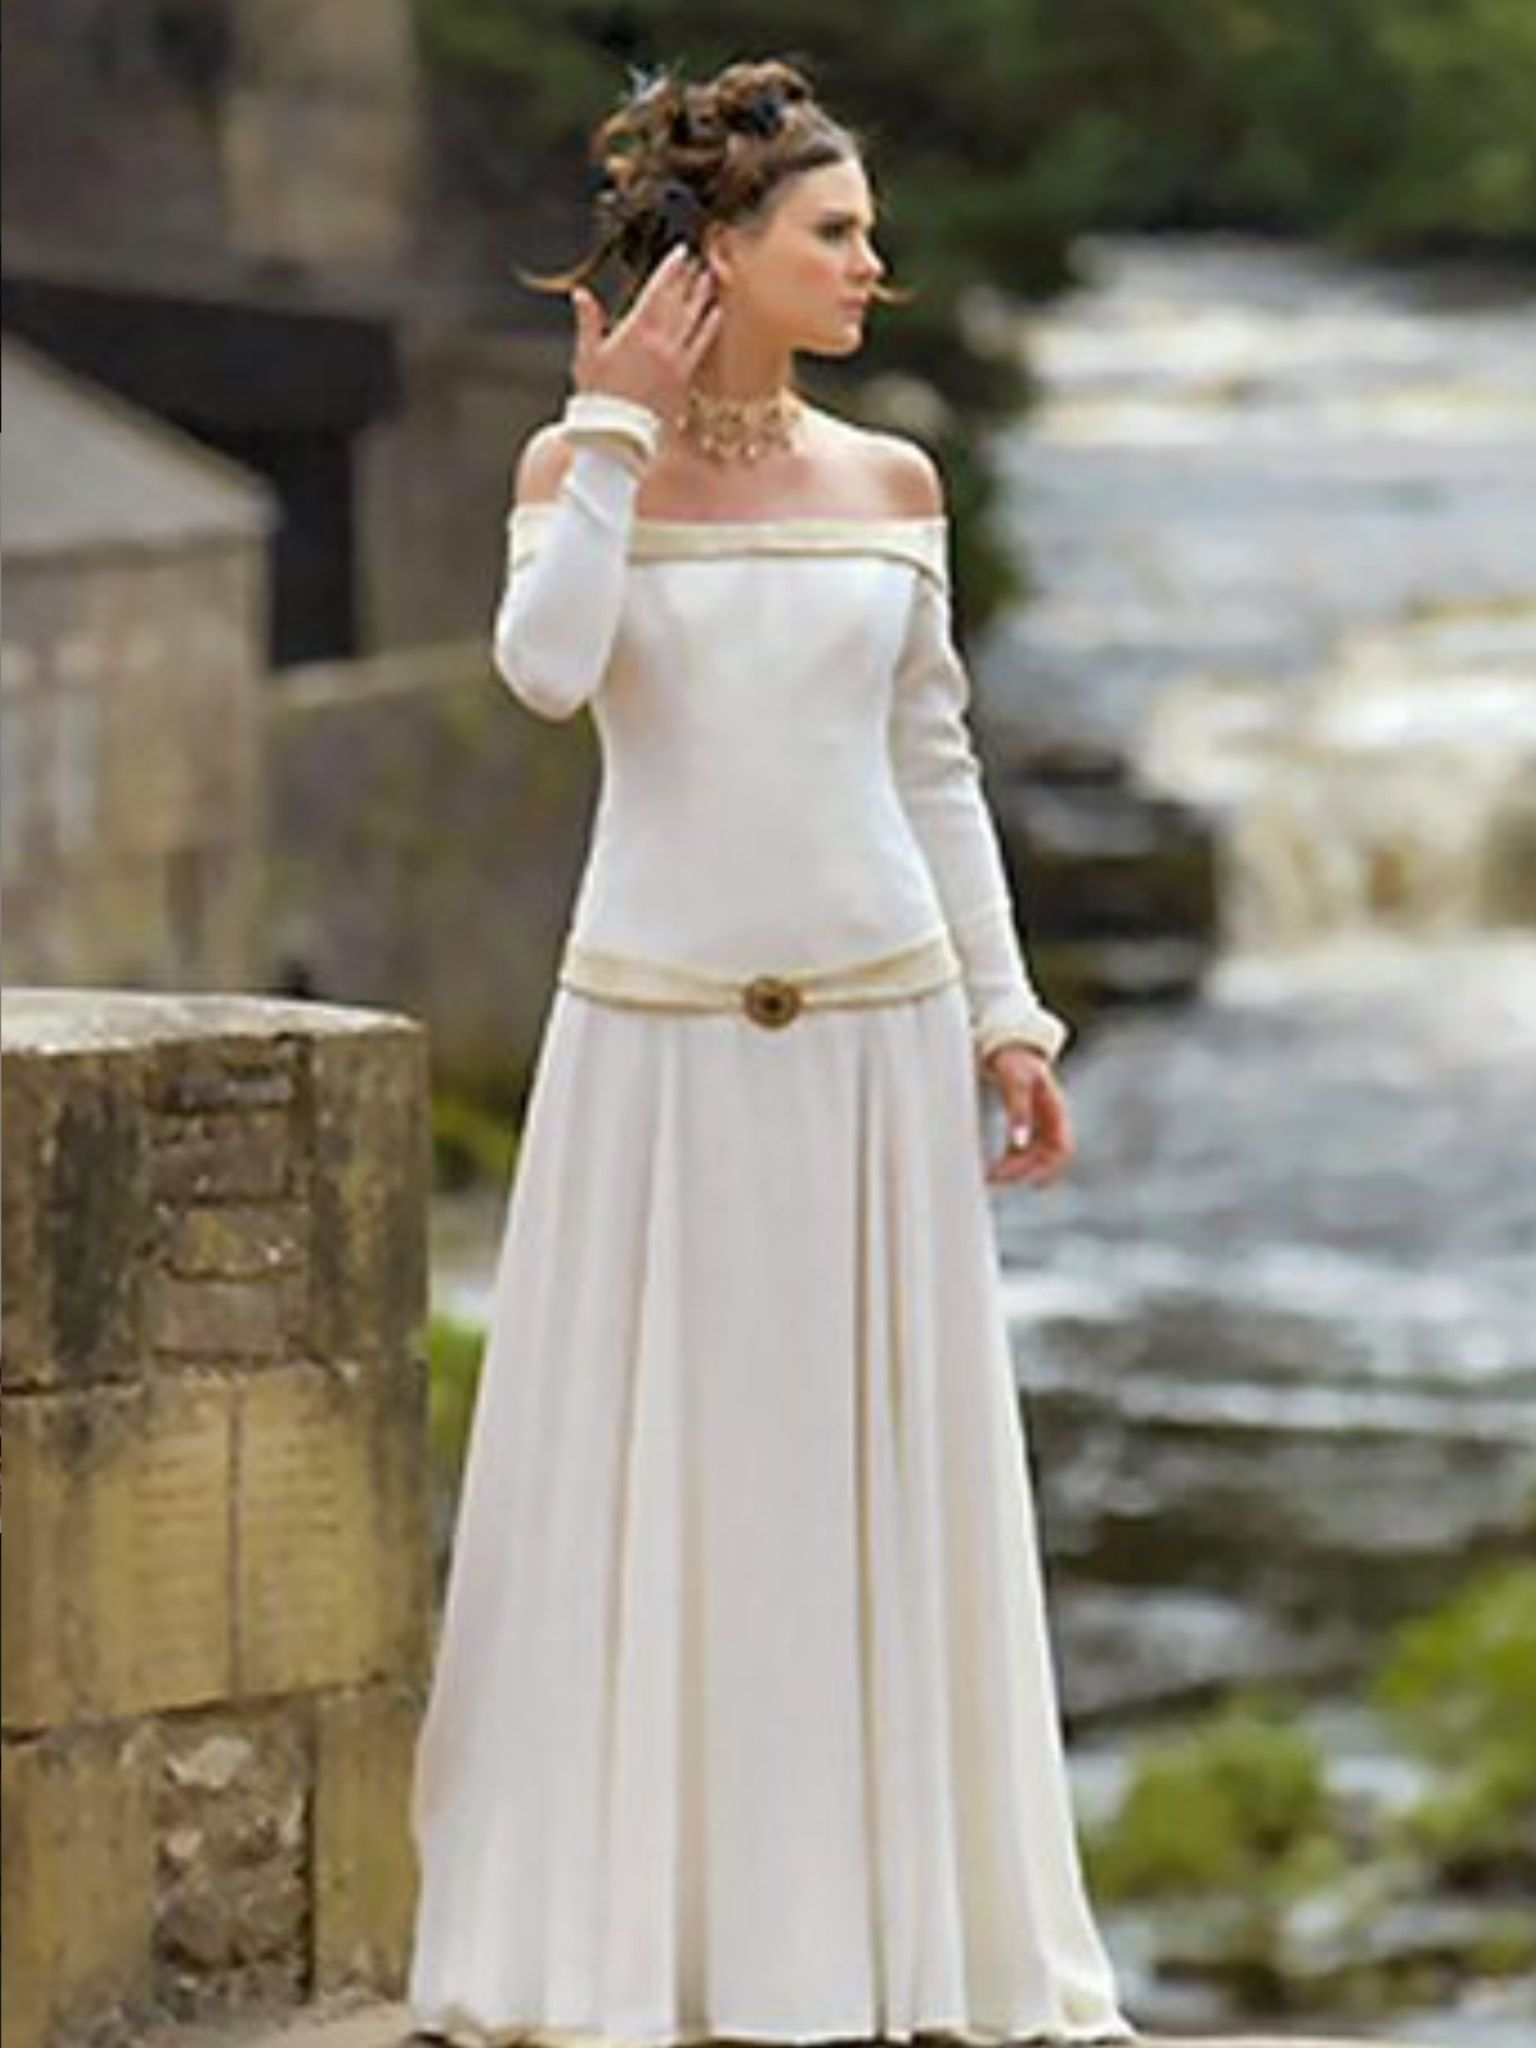 Celtic Inspired Gown Wedding Dress Perhaps